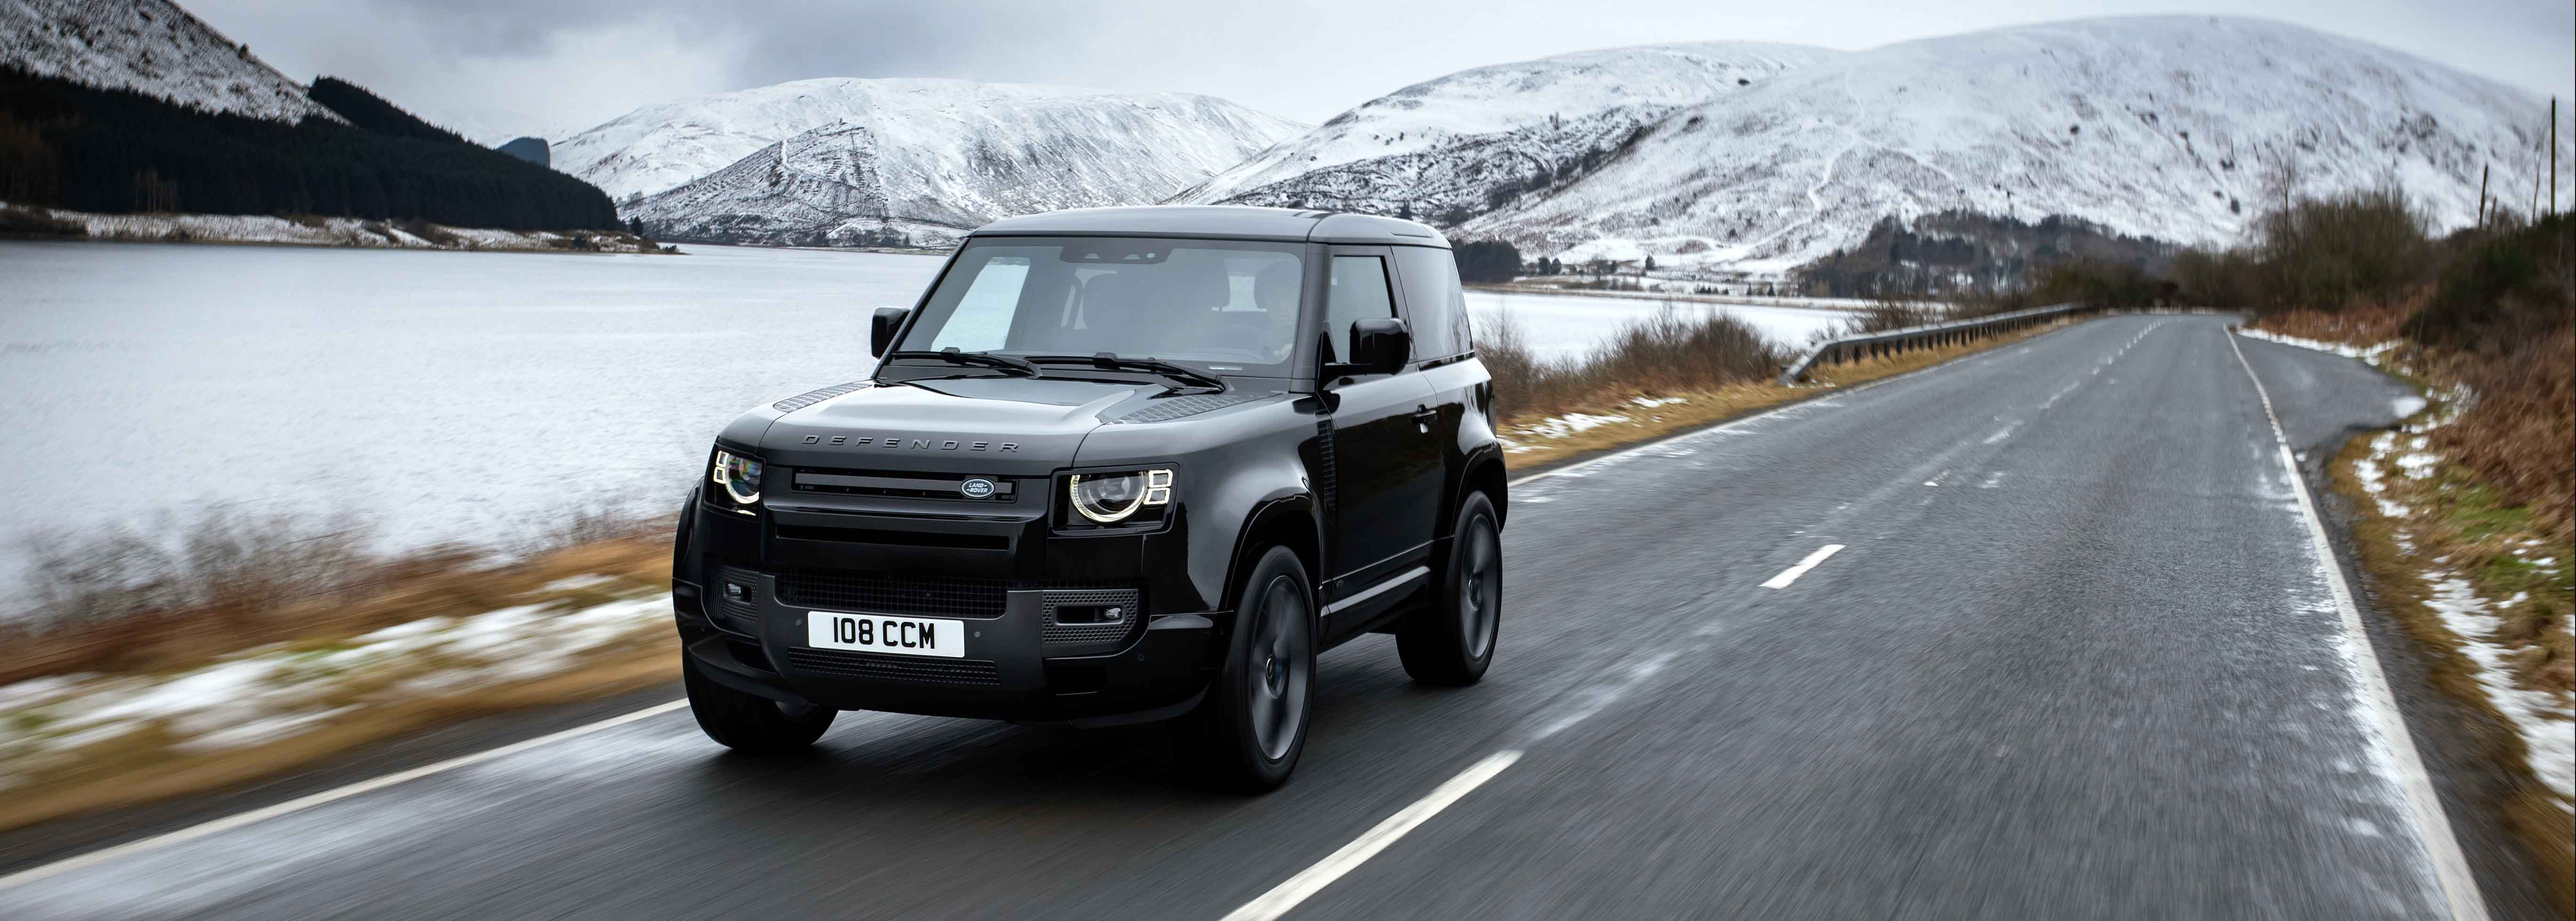 Land Rover launches powerful V8 Defender